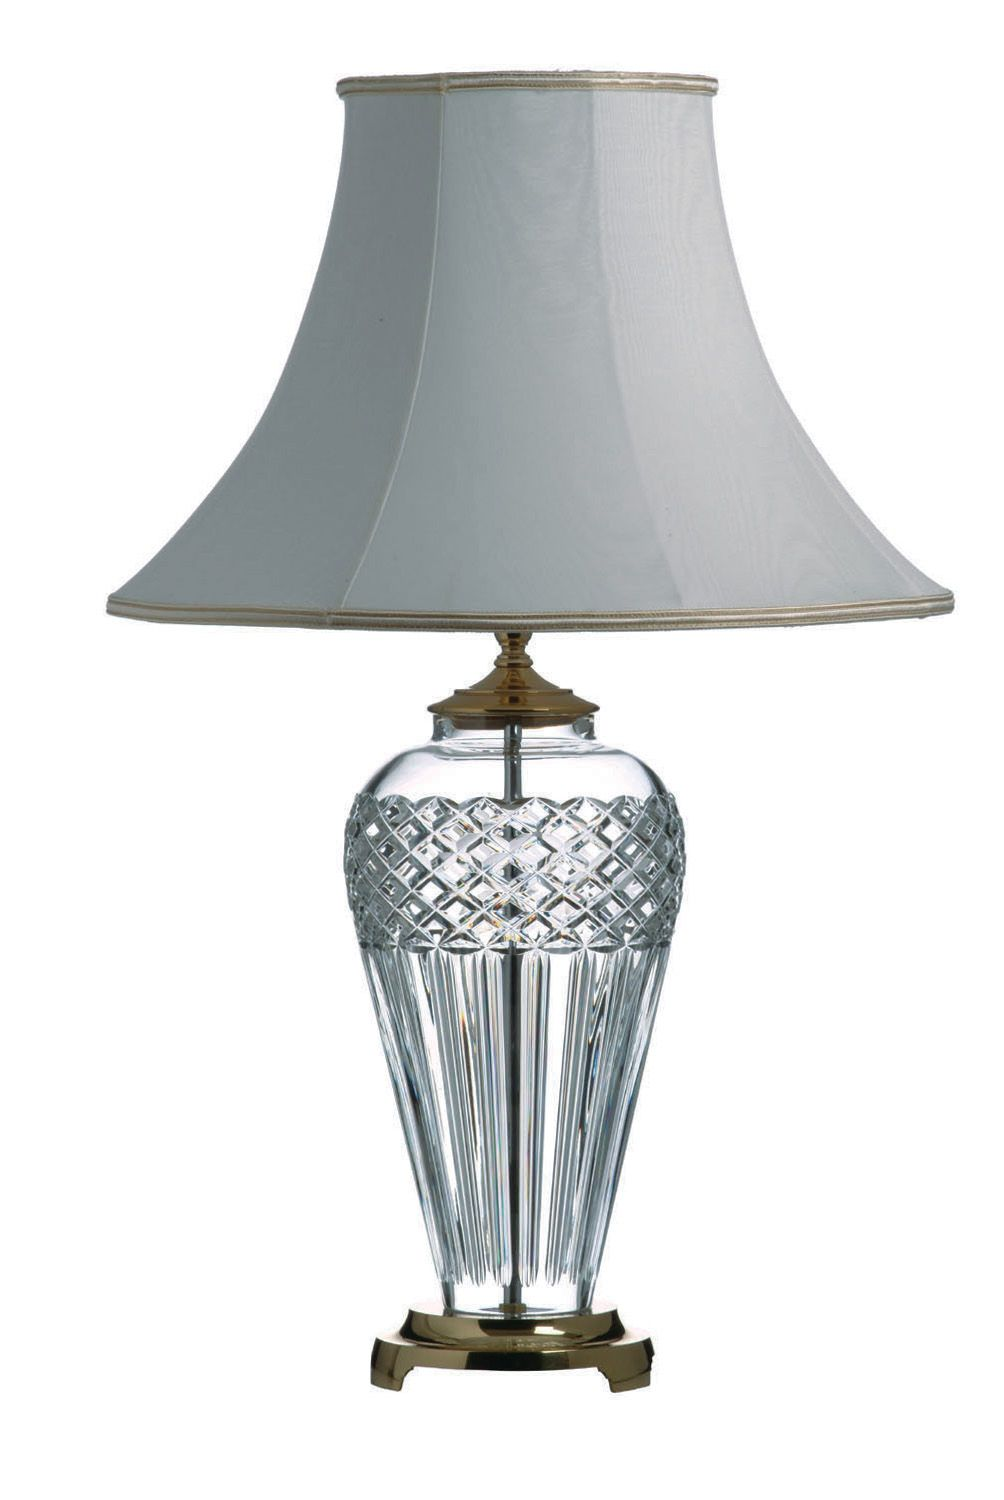 Ceramic Table Lamps Waterford Crystal Table Lamps Cheap